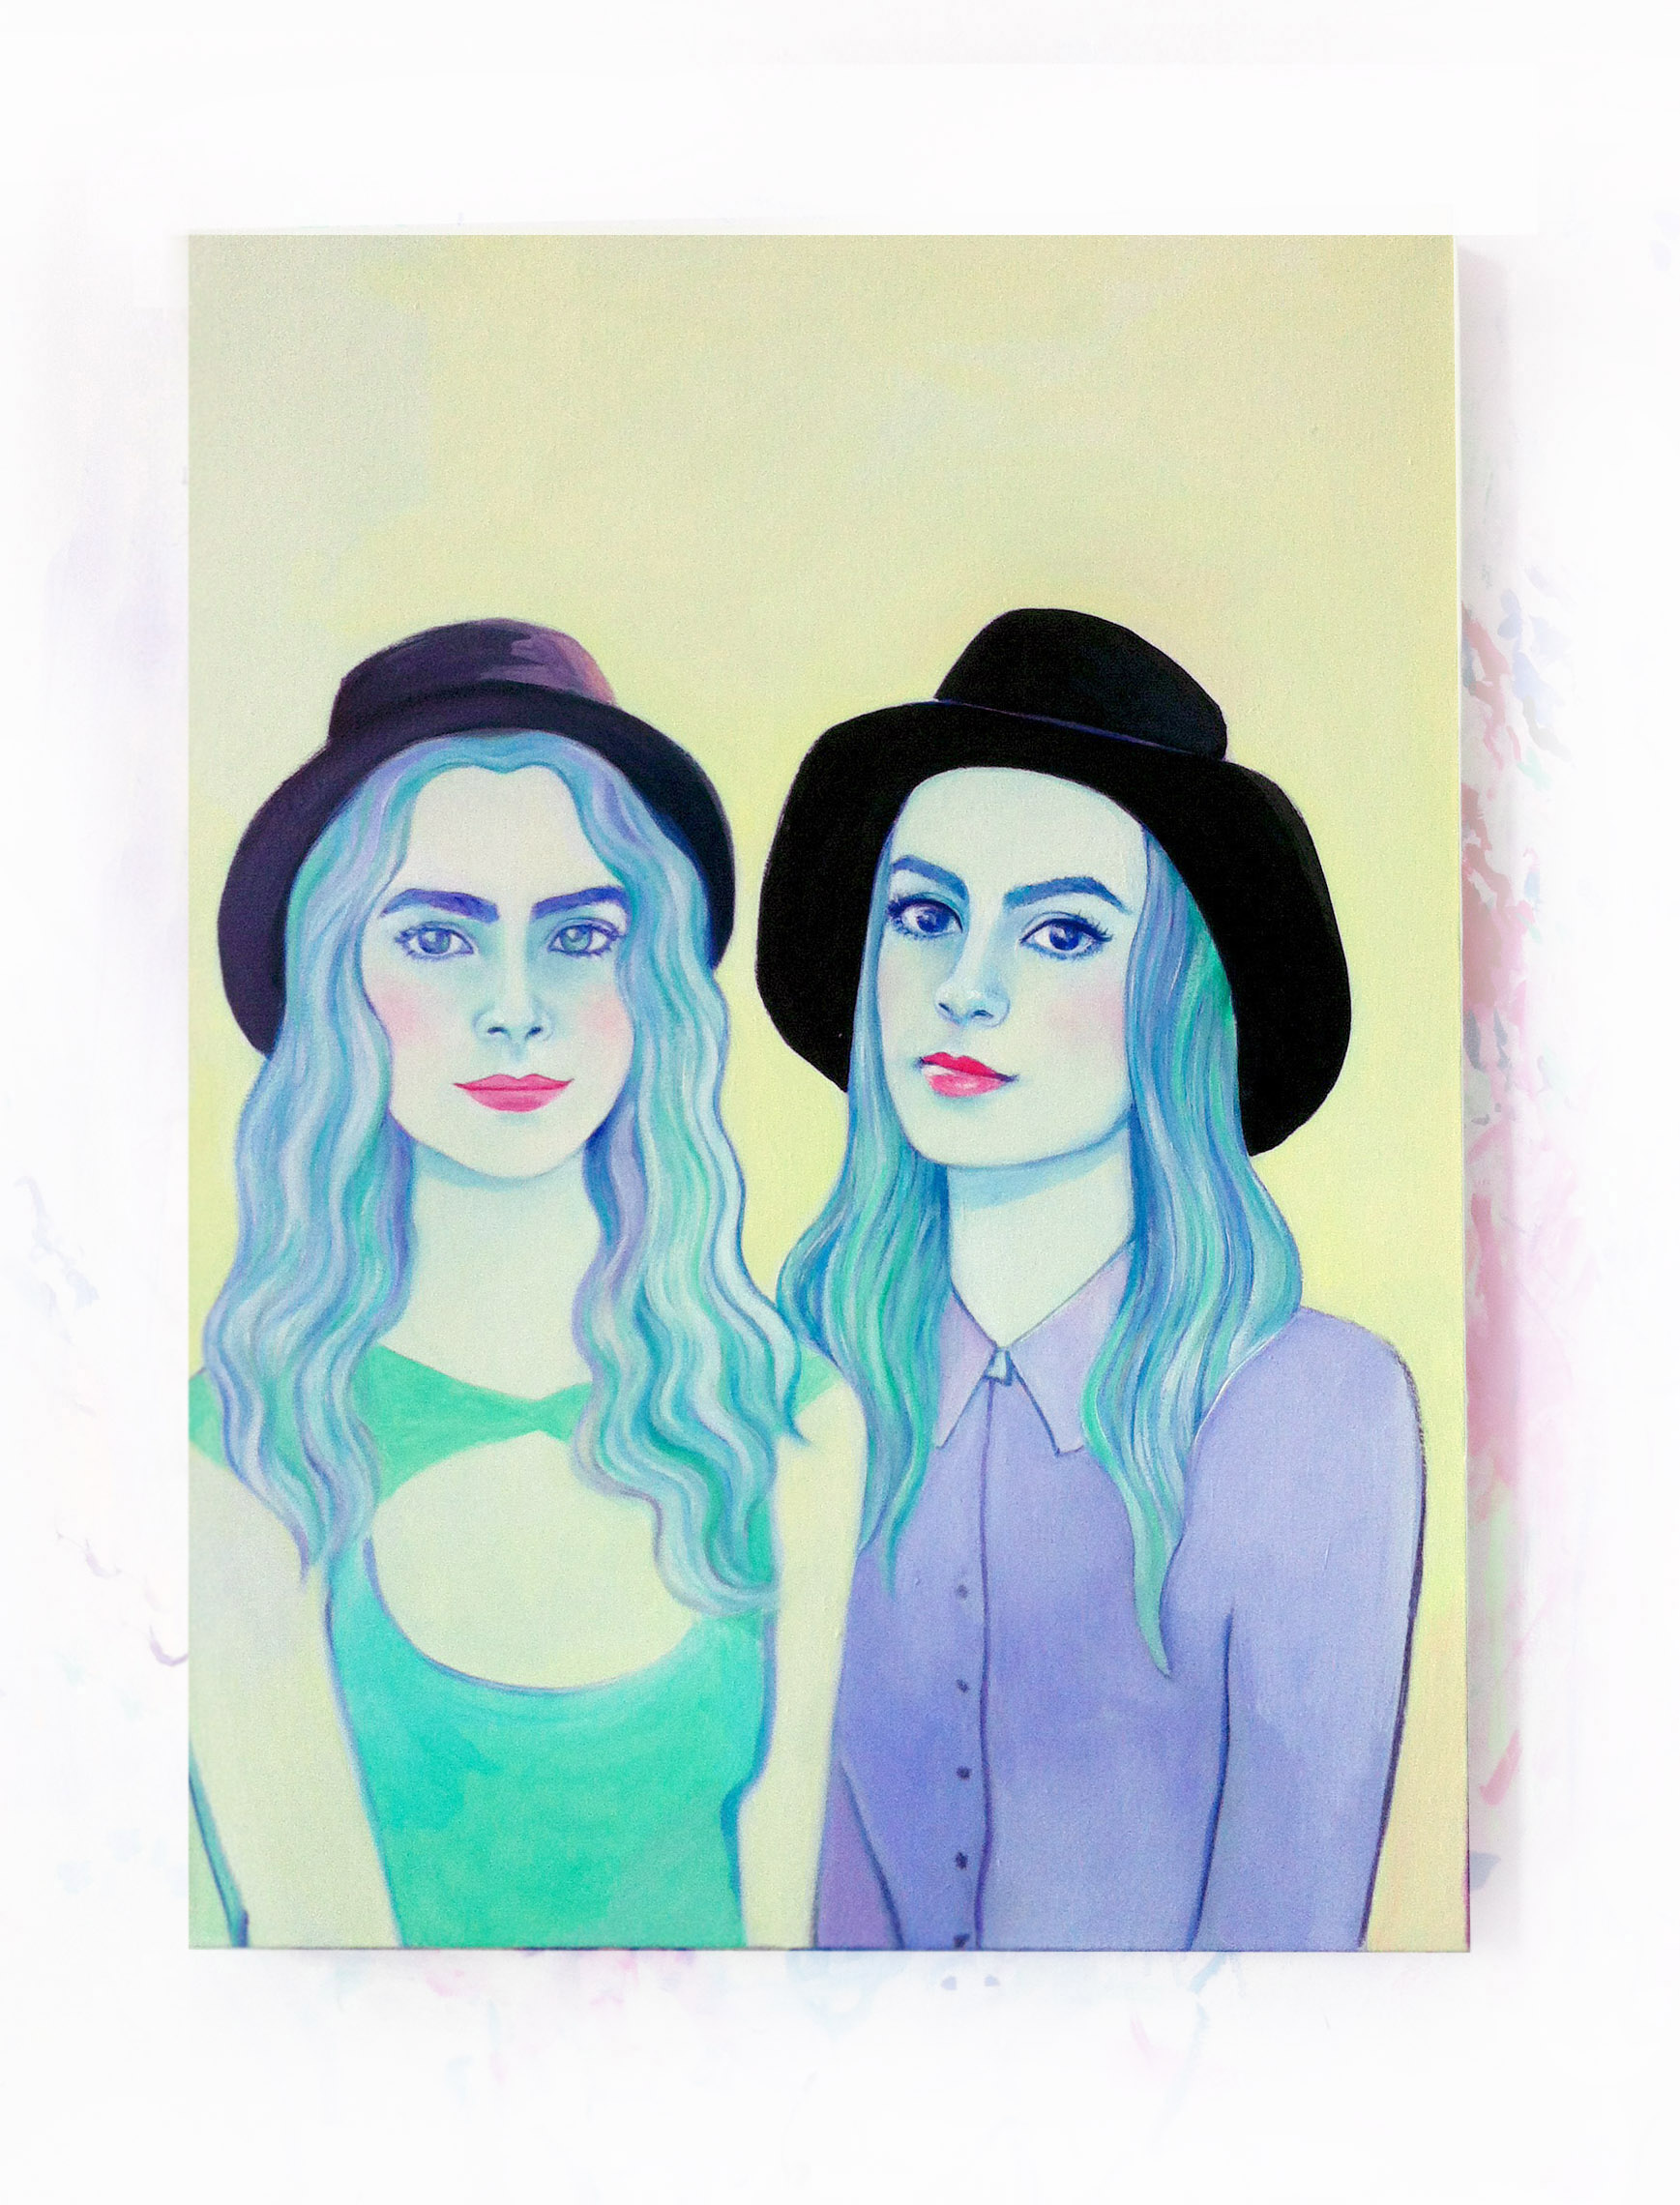 lizzy and carla, oil on canvas, 22 x 24 in.2014